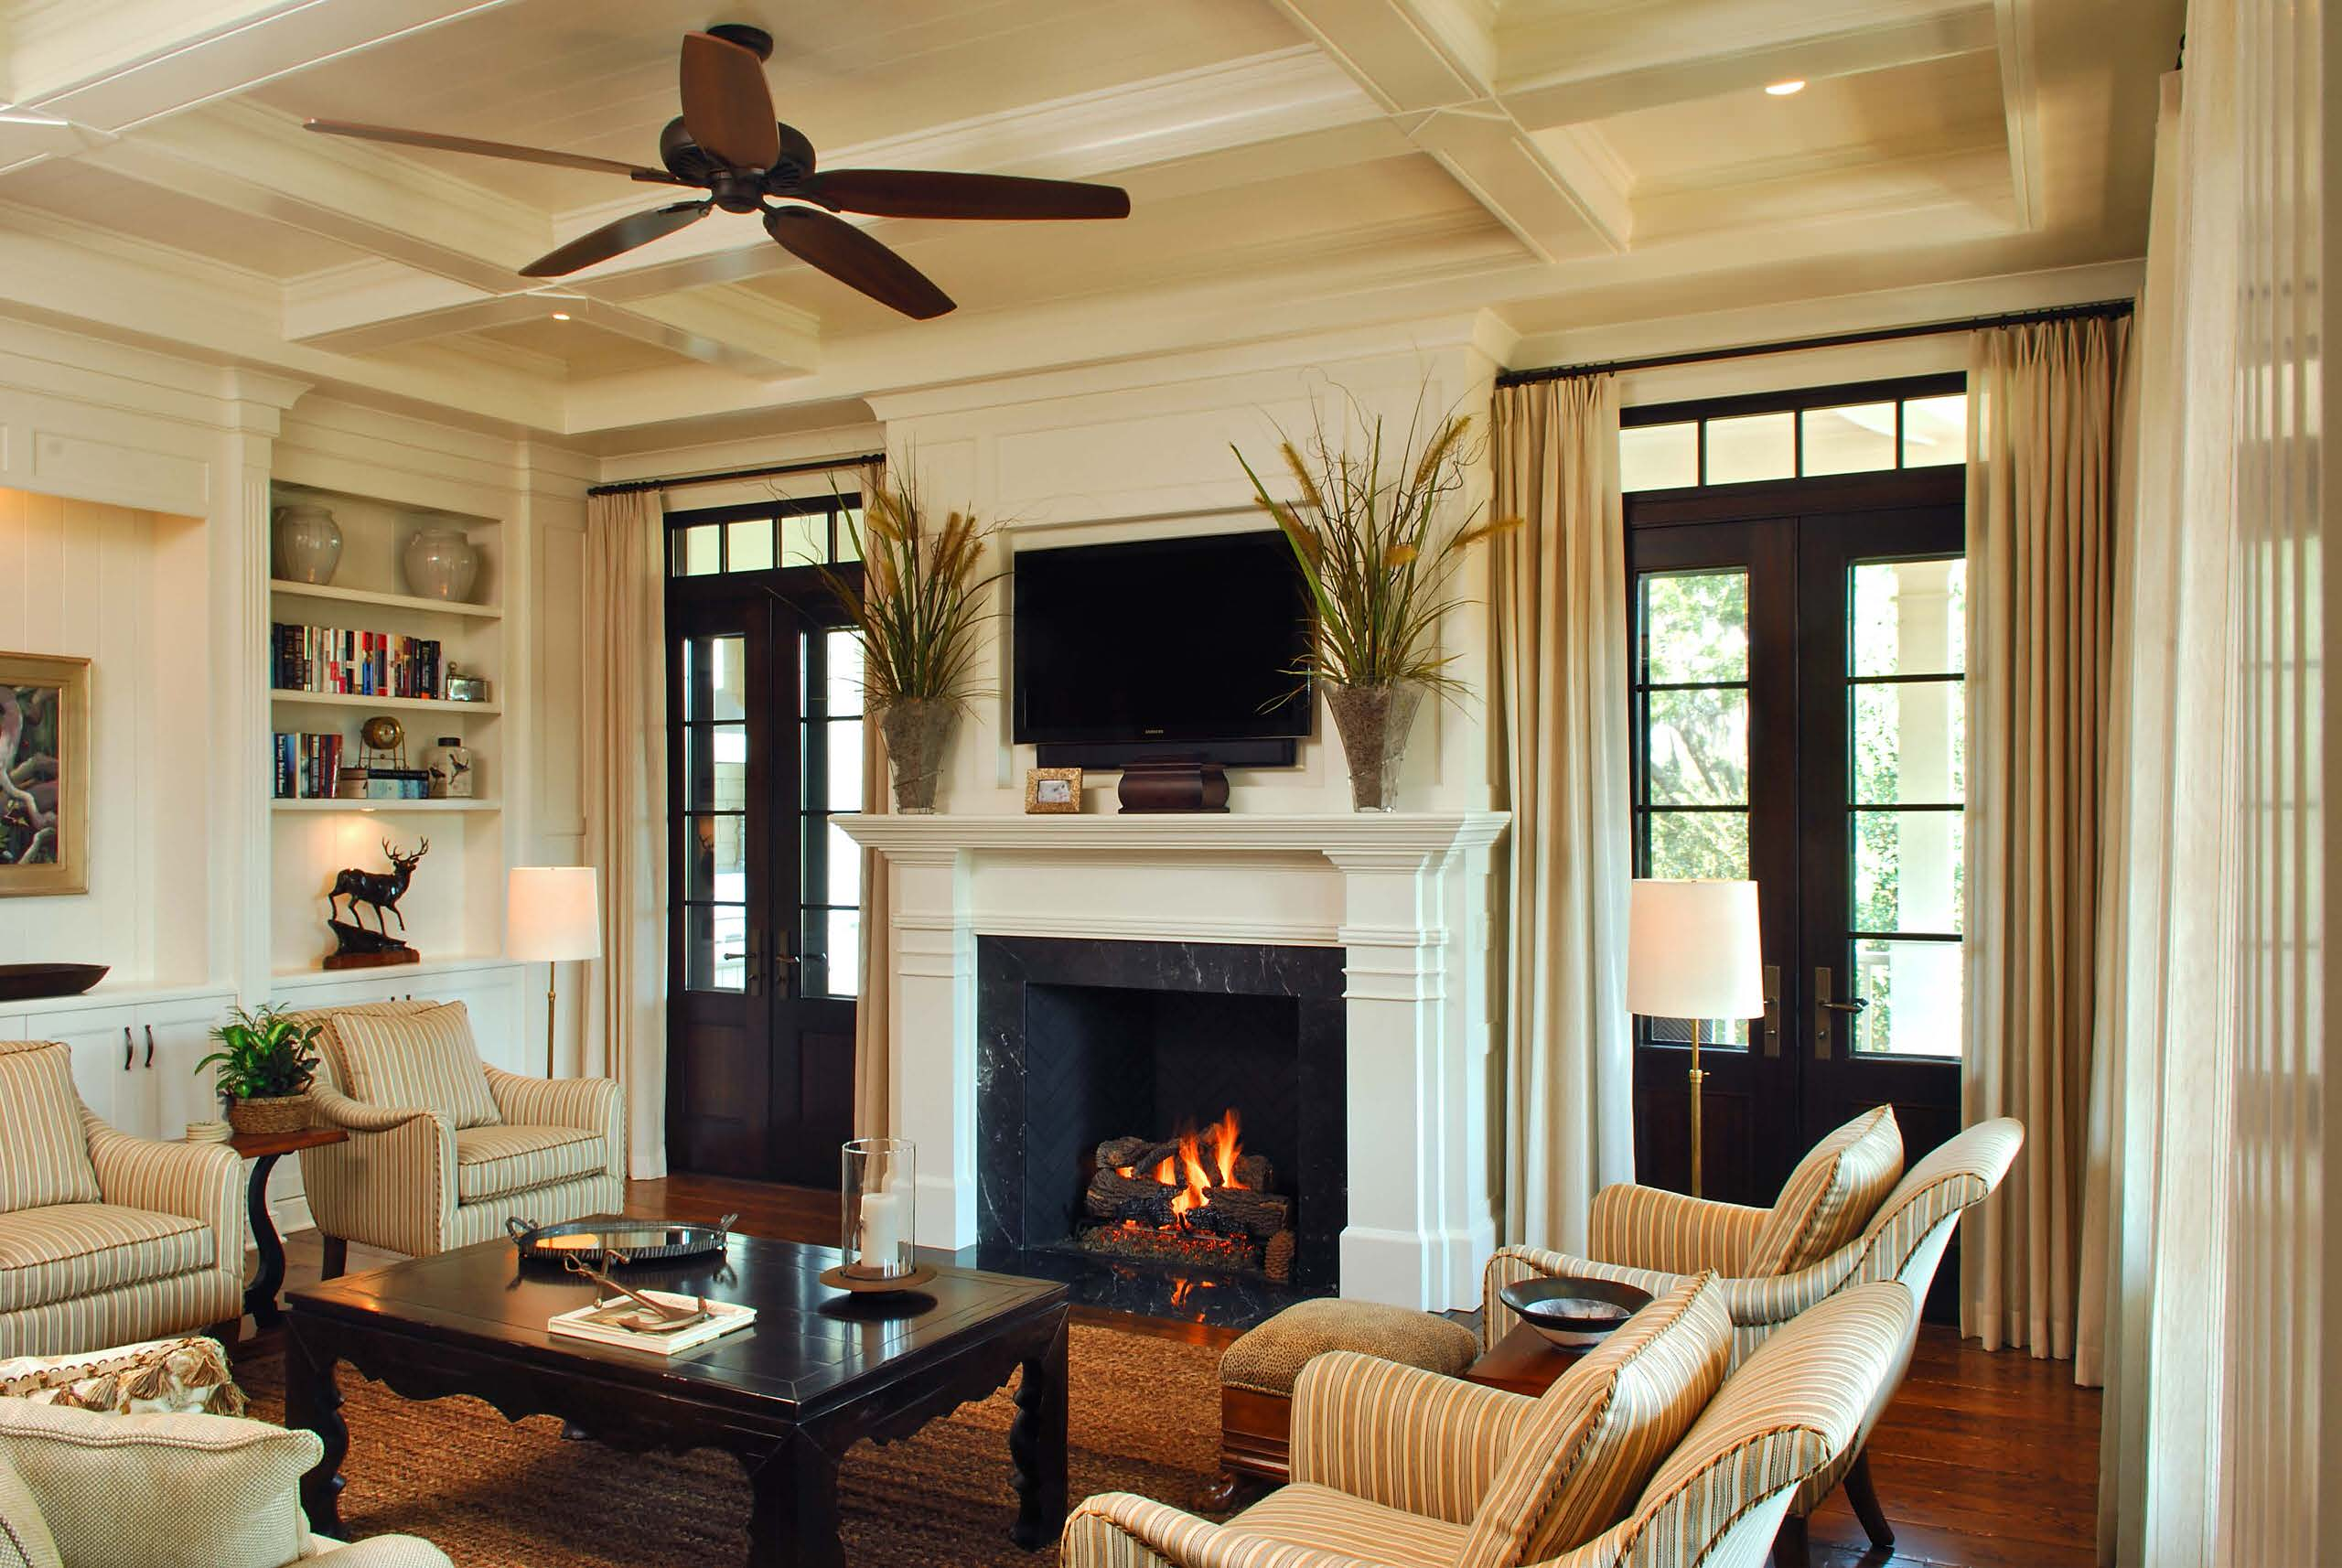 Interior designers charleston sc Traditional Family Room built in cabinetry dark wood floor